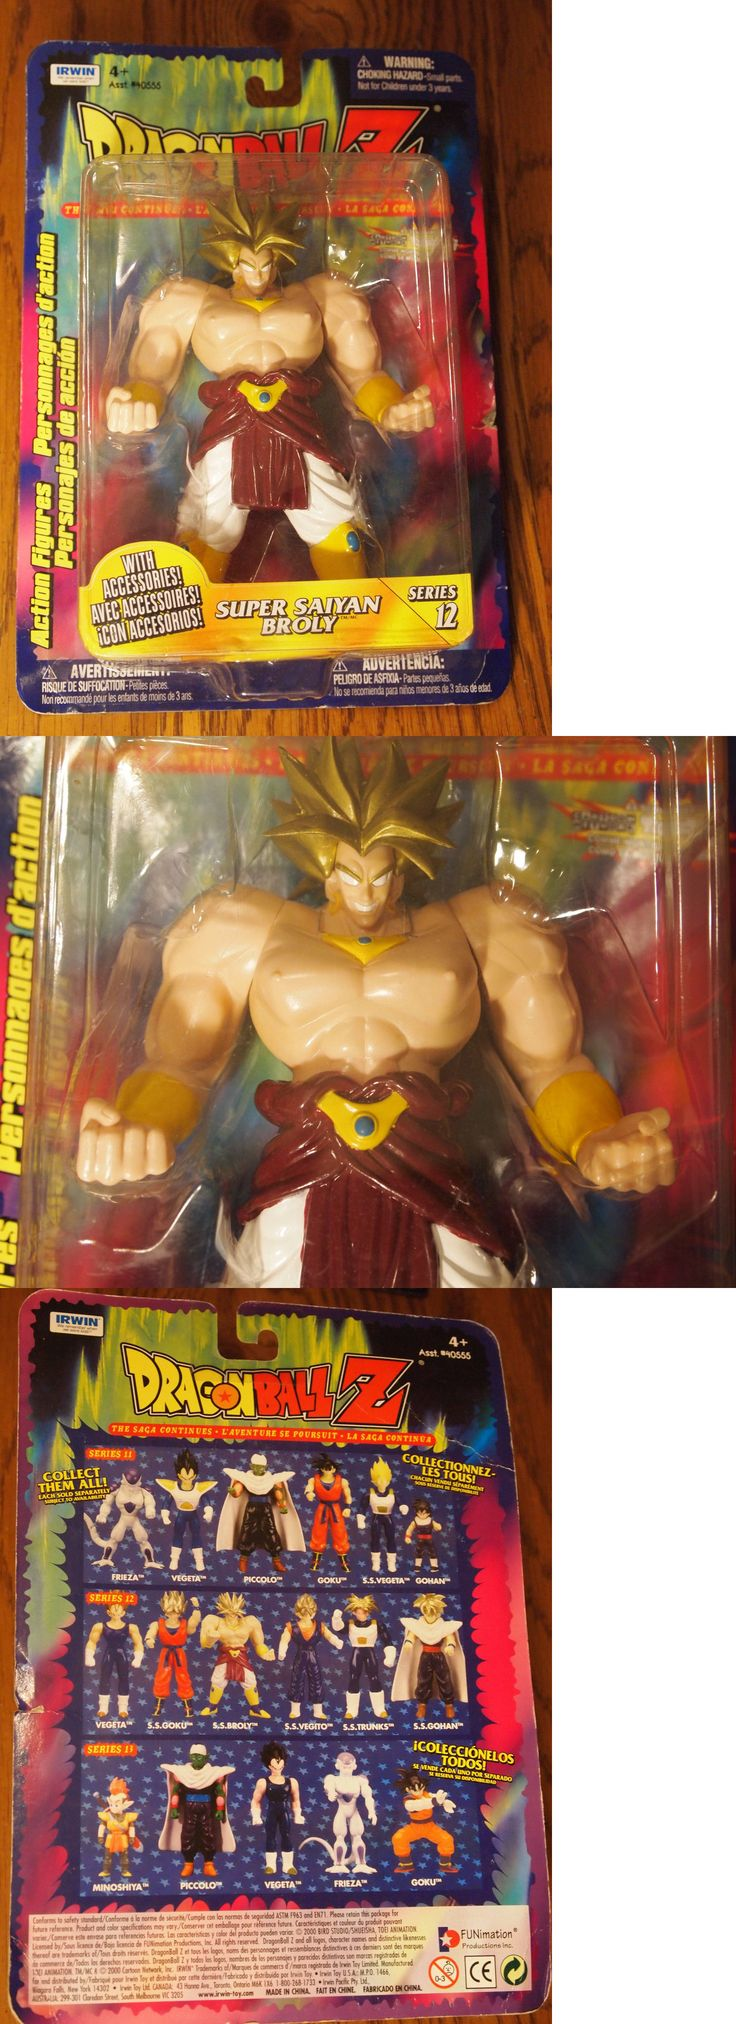 DragonBall Z 7117: Irwin 2000 Dragonball Z Series 12 Super Saiyan Broly Figure, Mint On Card -> BUY IT NOW ONLY: $31.95 on eBay!